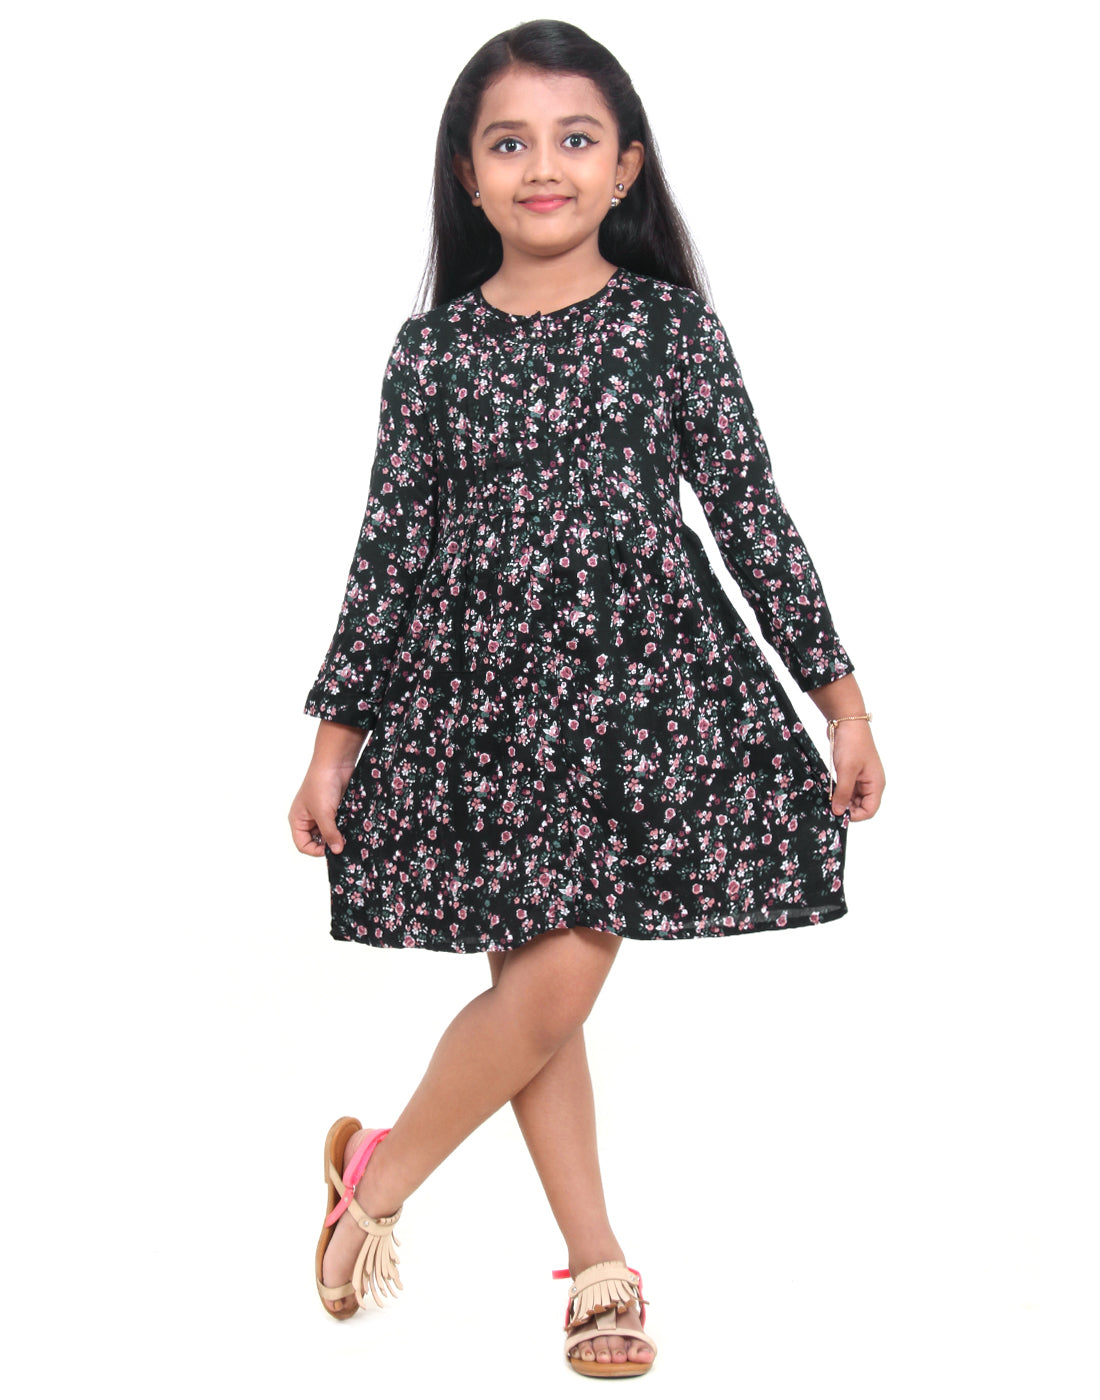 Stretch Limo Rayon Frock for Girls